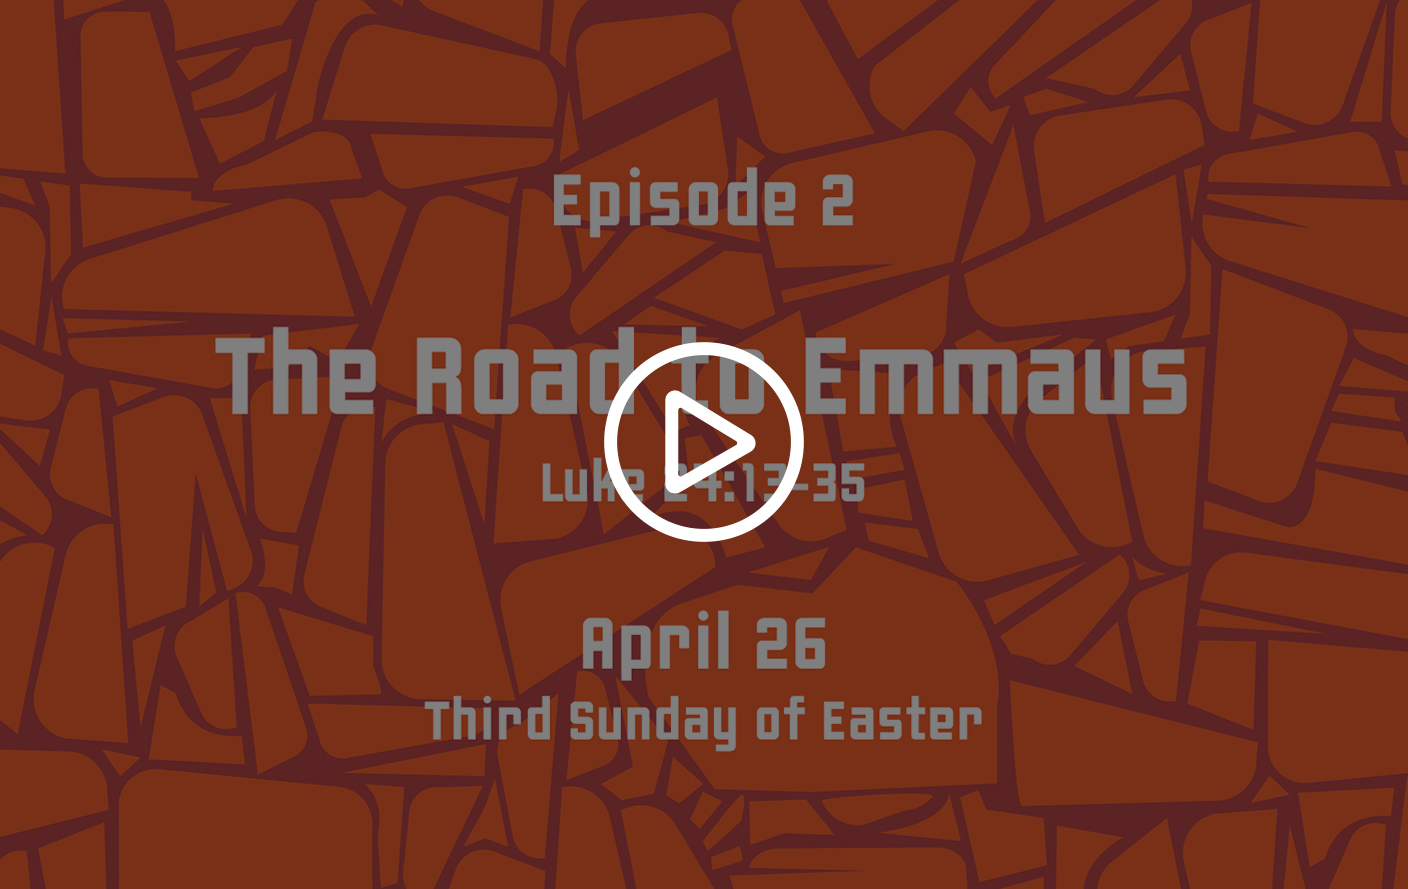 The Road to Emmaus video